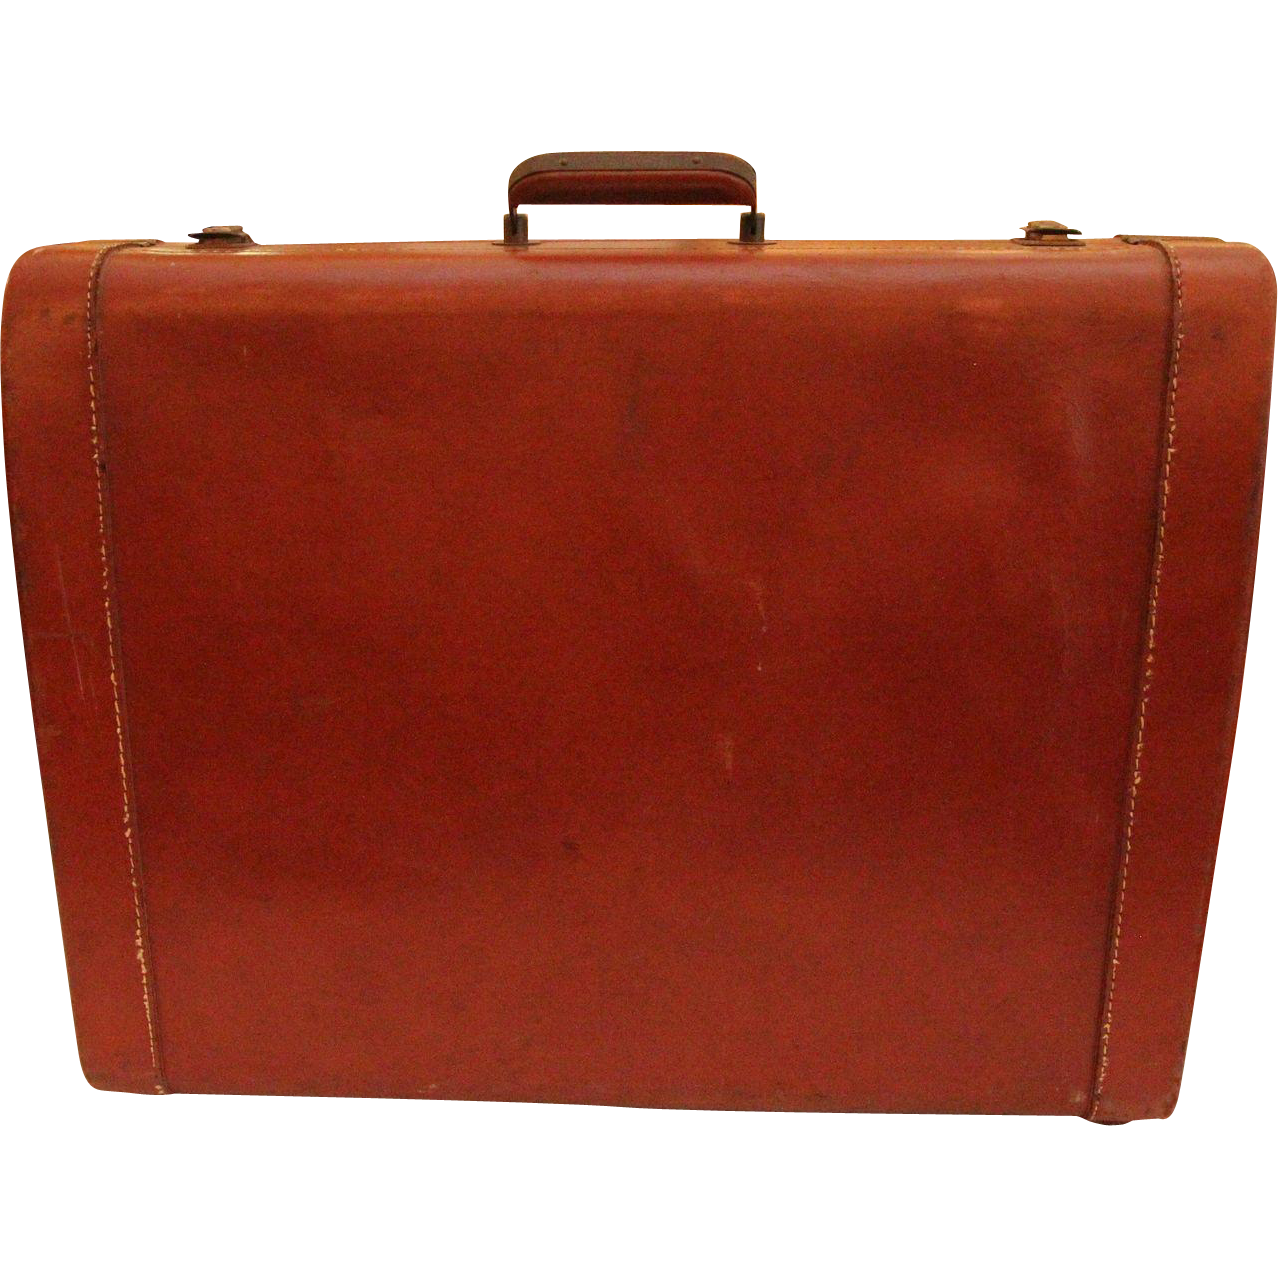 Vintage leather suitcase with decorative stitching